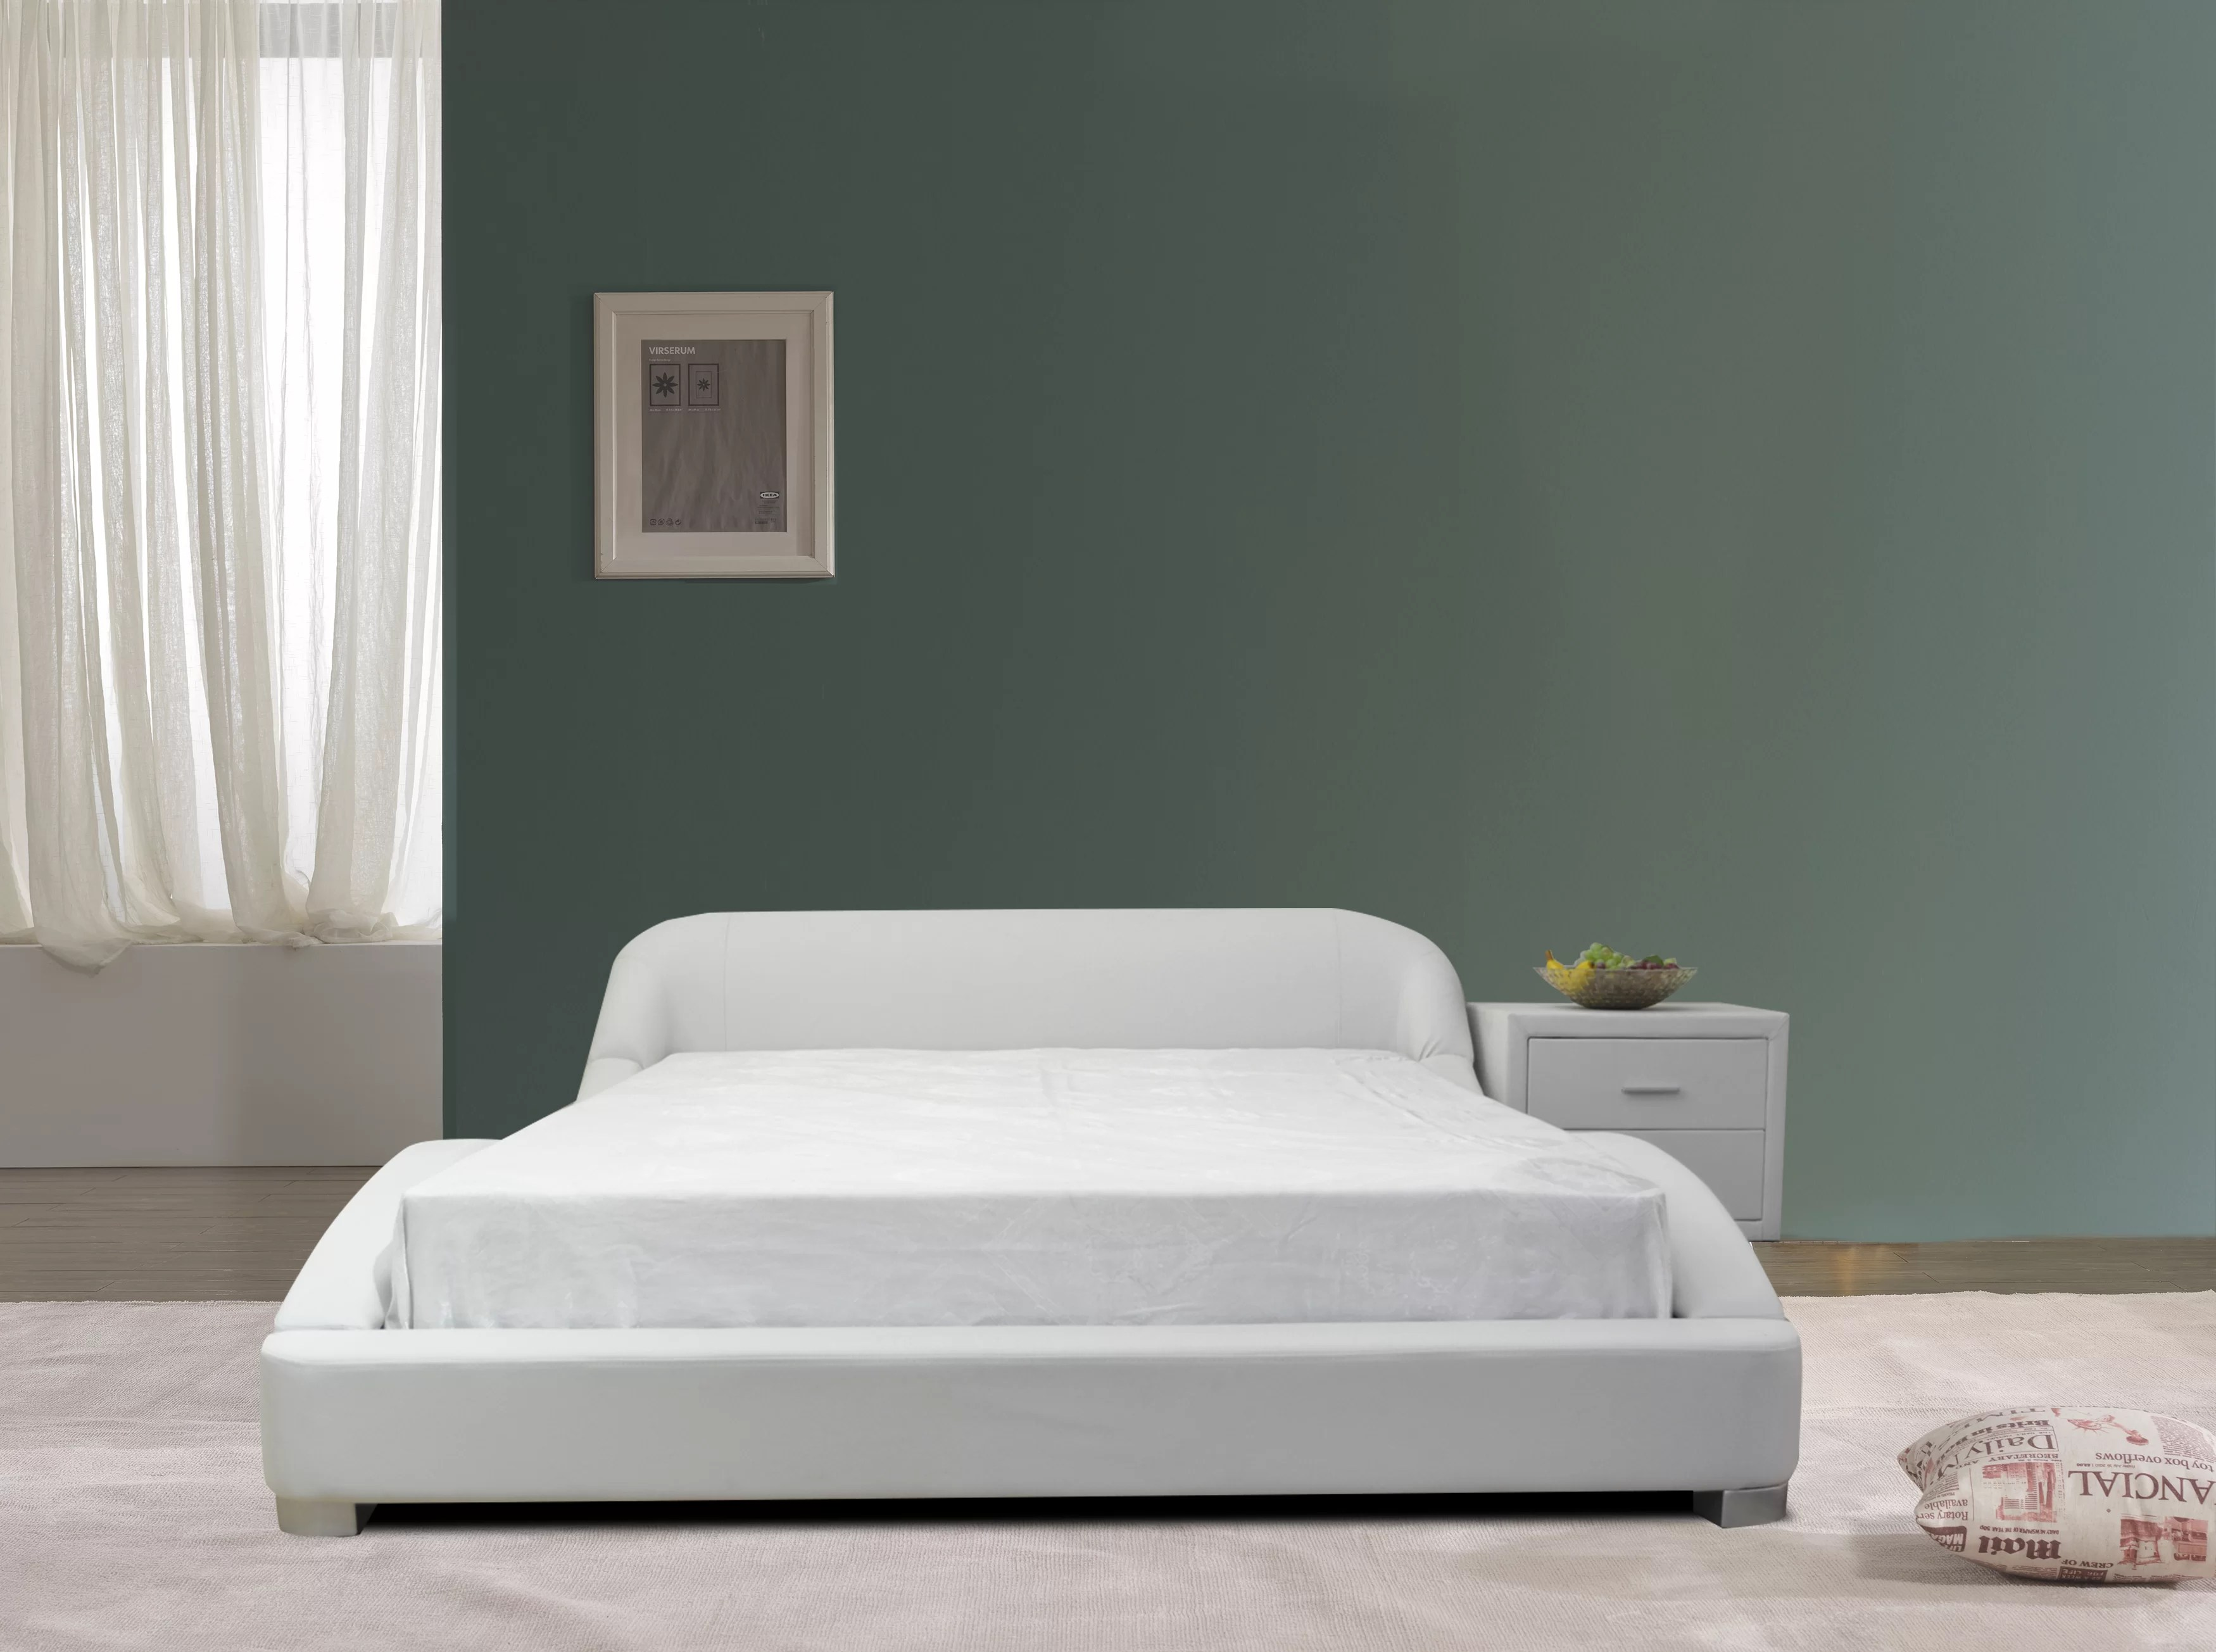 Brayden Studio B1216 2 Modern Platform Bed Queen White Wayfair Ca